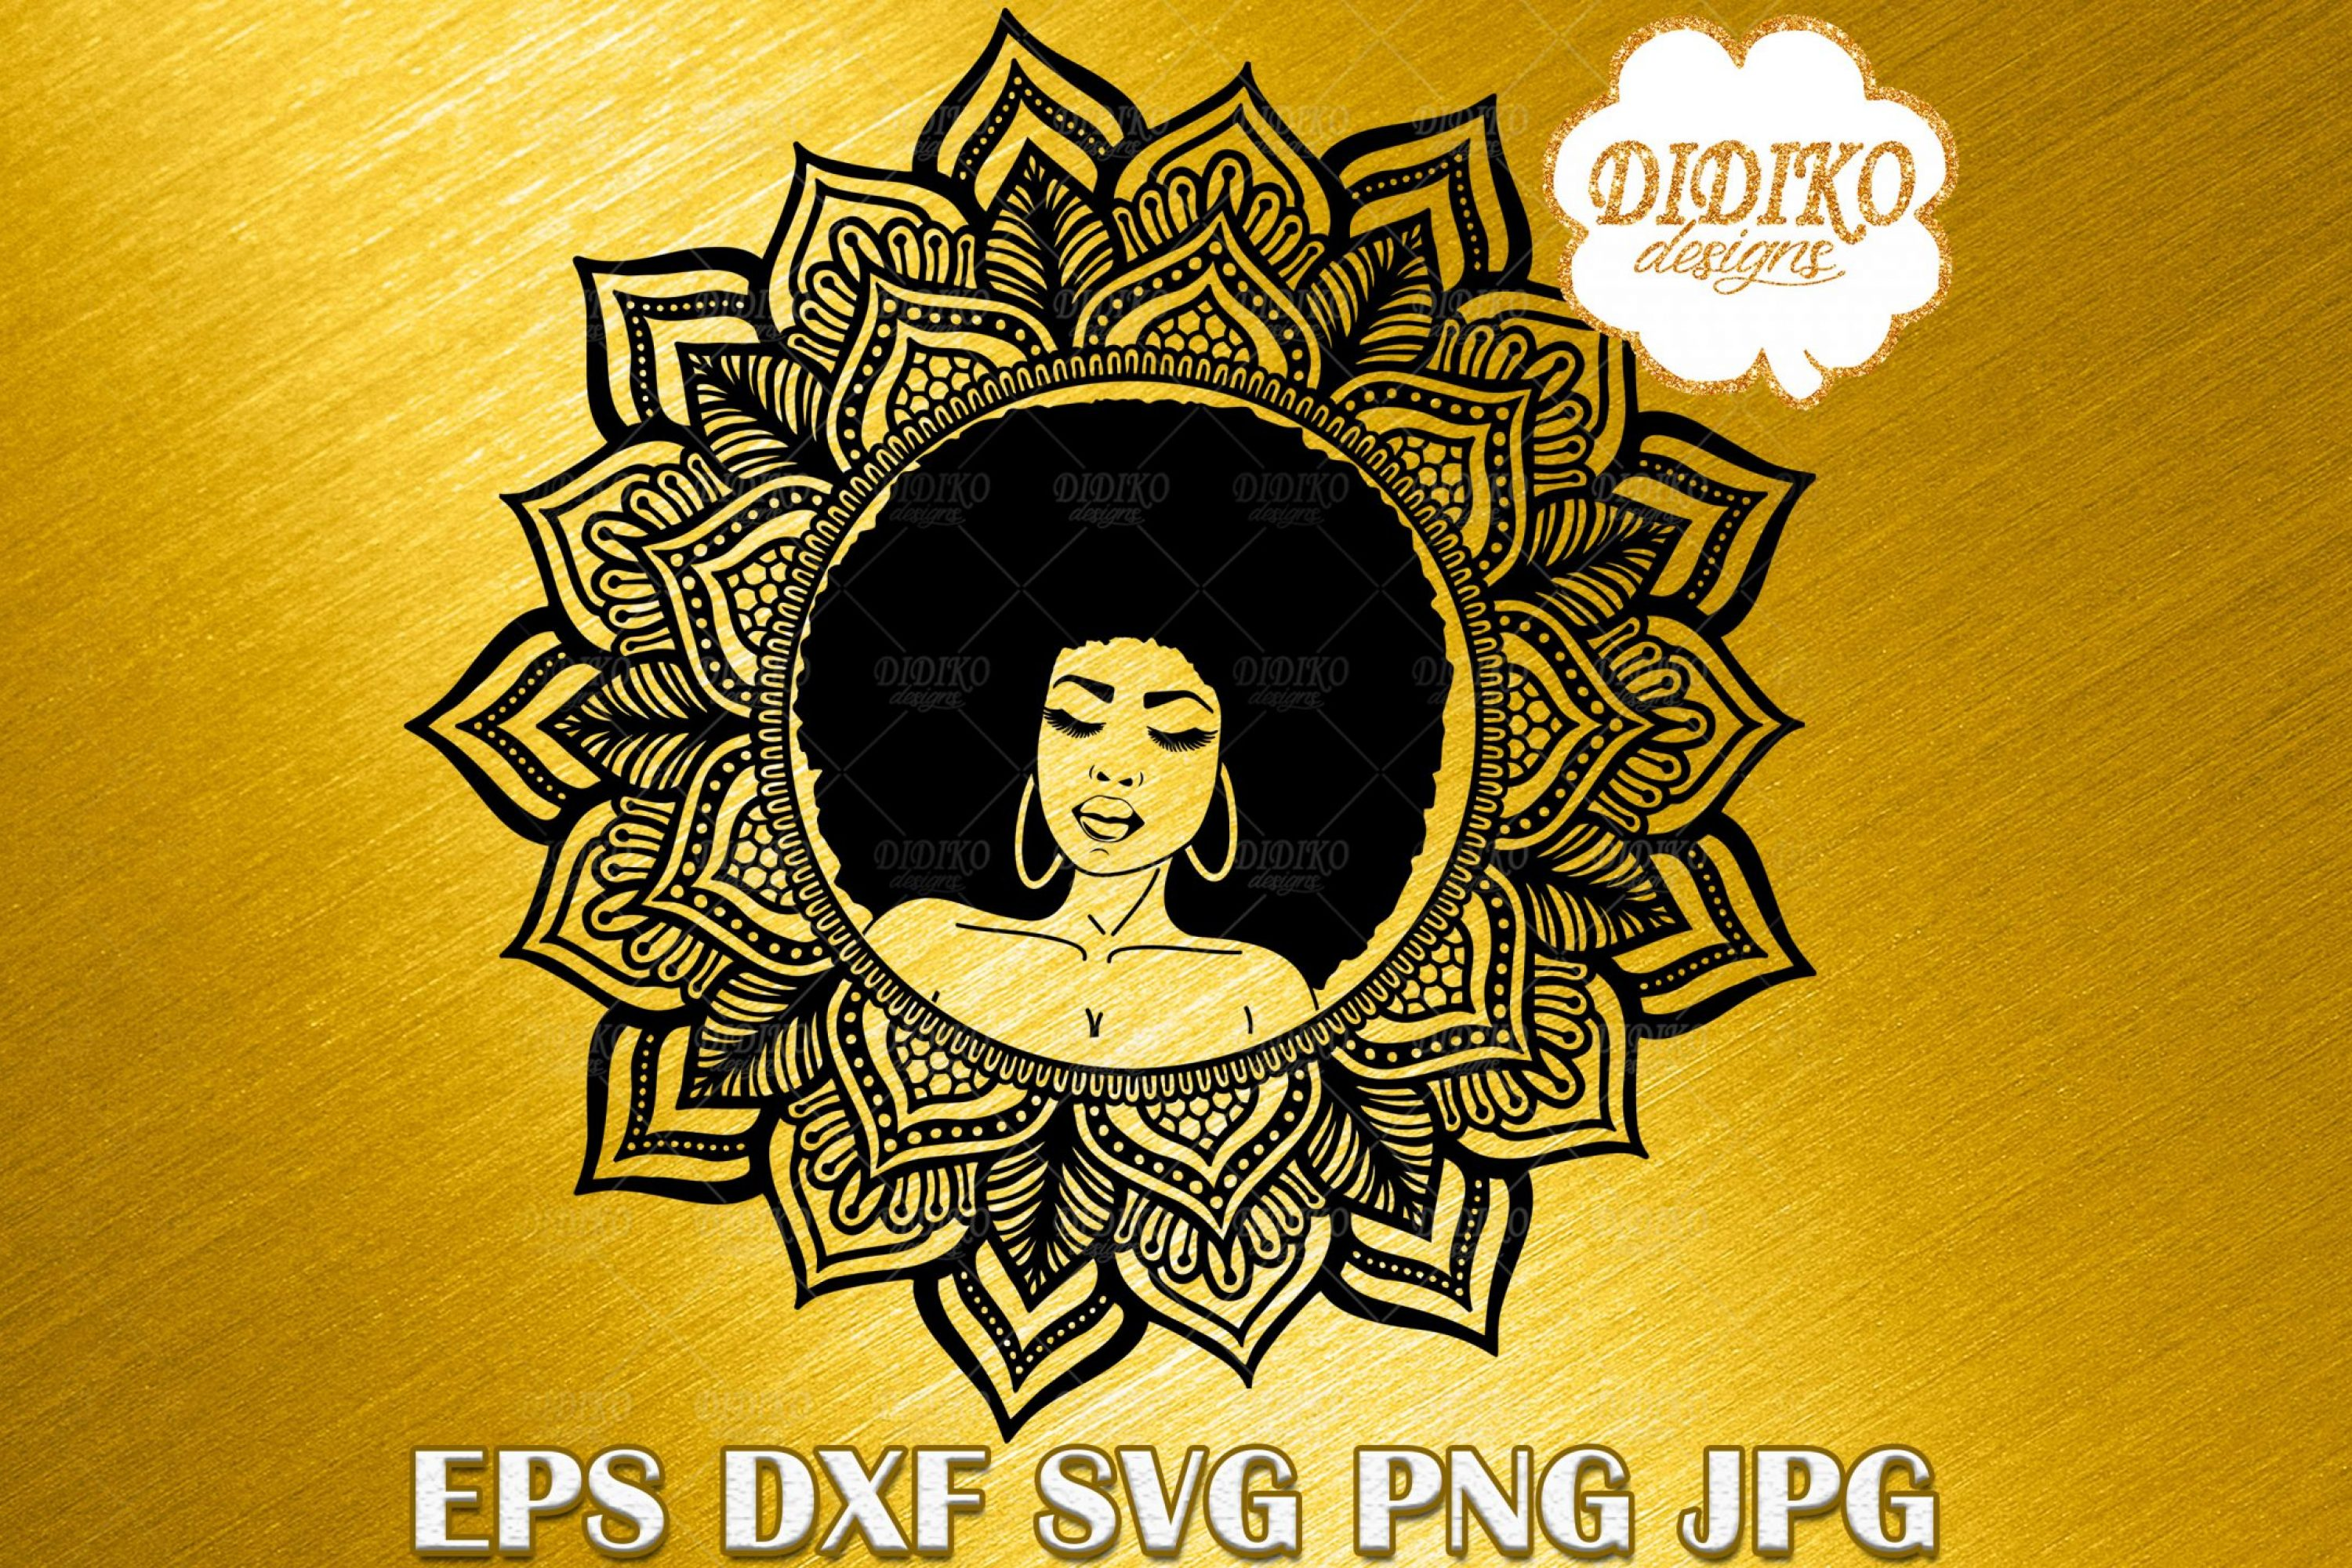 Afro Woman SVG #2, Mandala SVG, Black Woman SVG, Afro Woman Vector, Silhouette, Cricut File